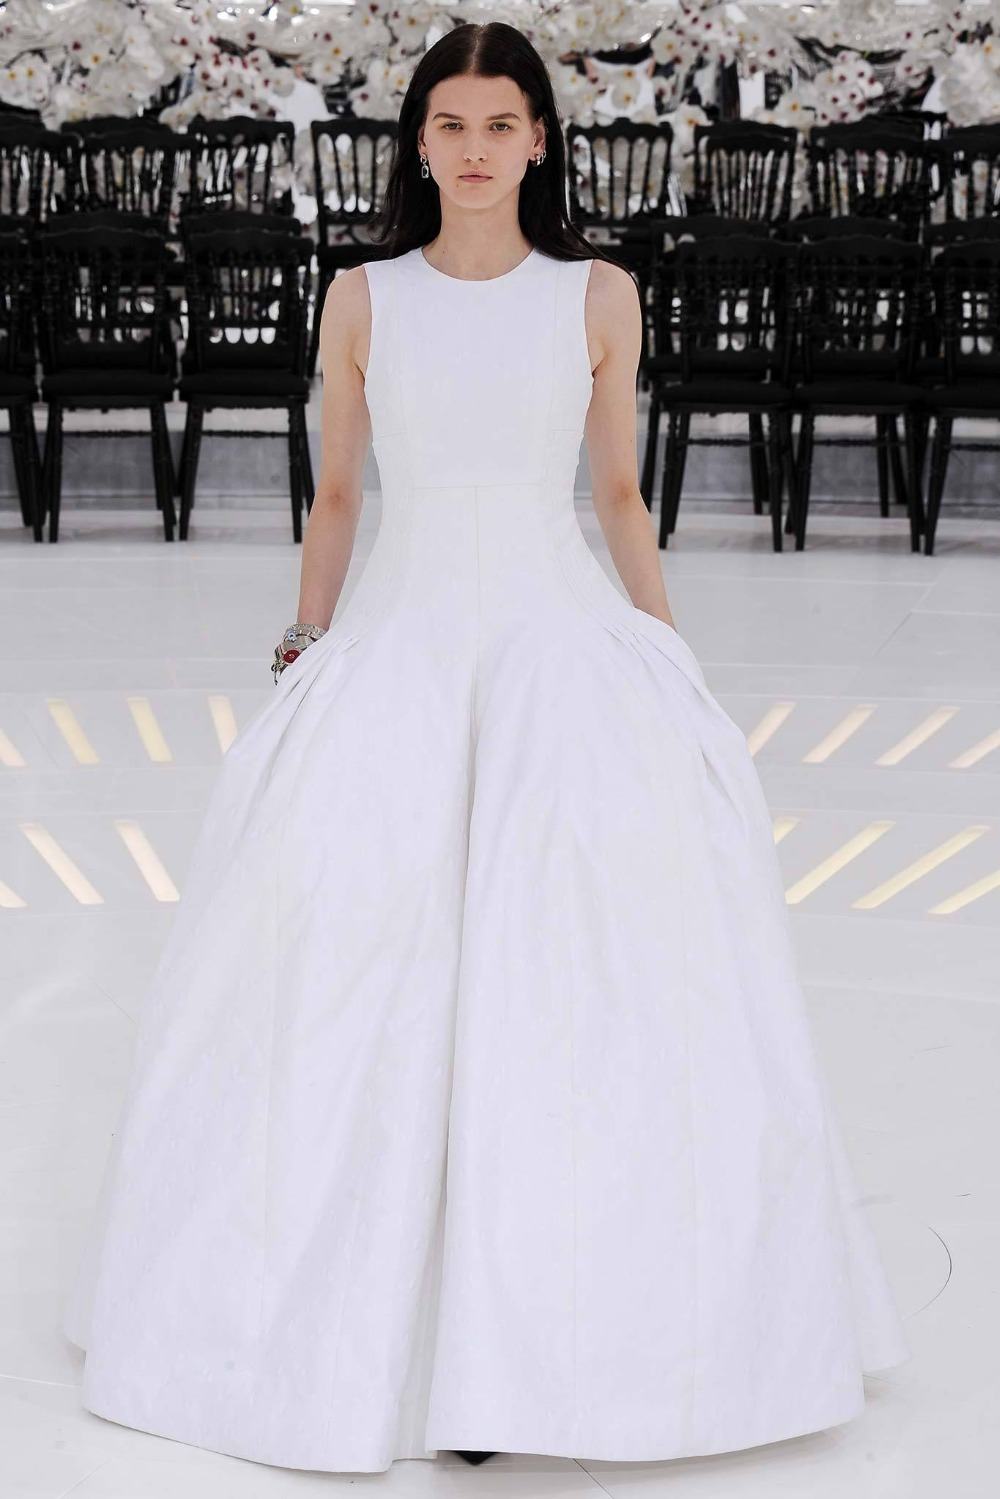 a8422b9bee White Ball Gown Graduation Gowns Semi Formal Dresses Scoop Neck Sleeveless  With Pockets Floor Length Vestido ...